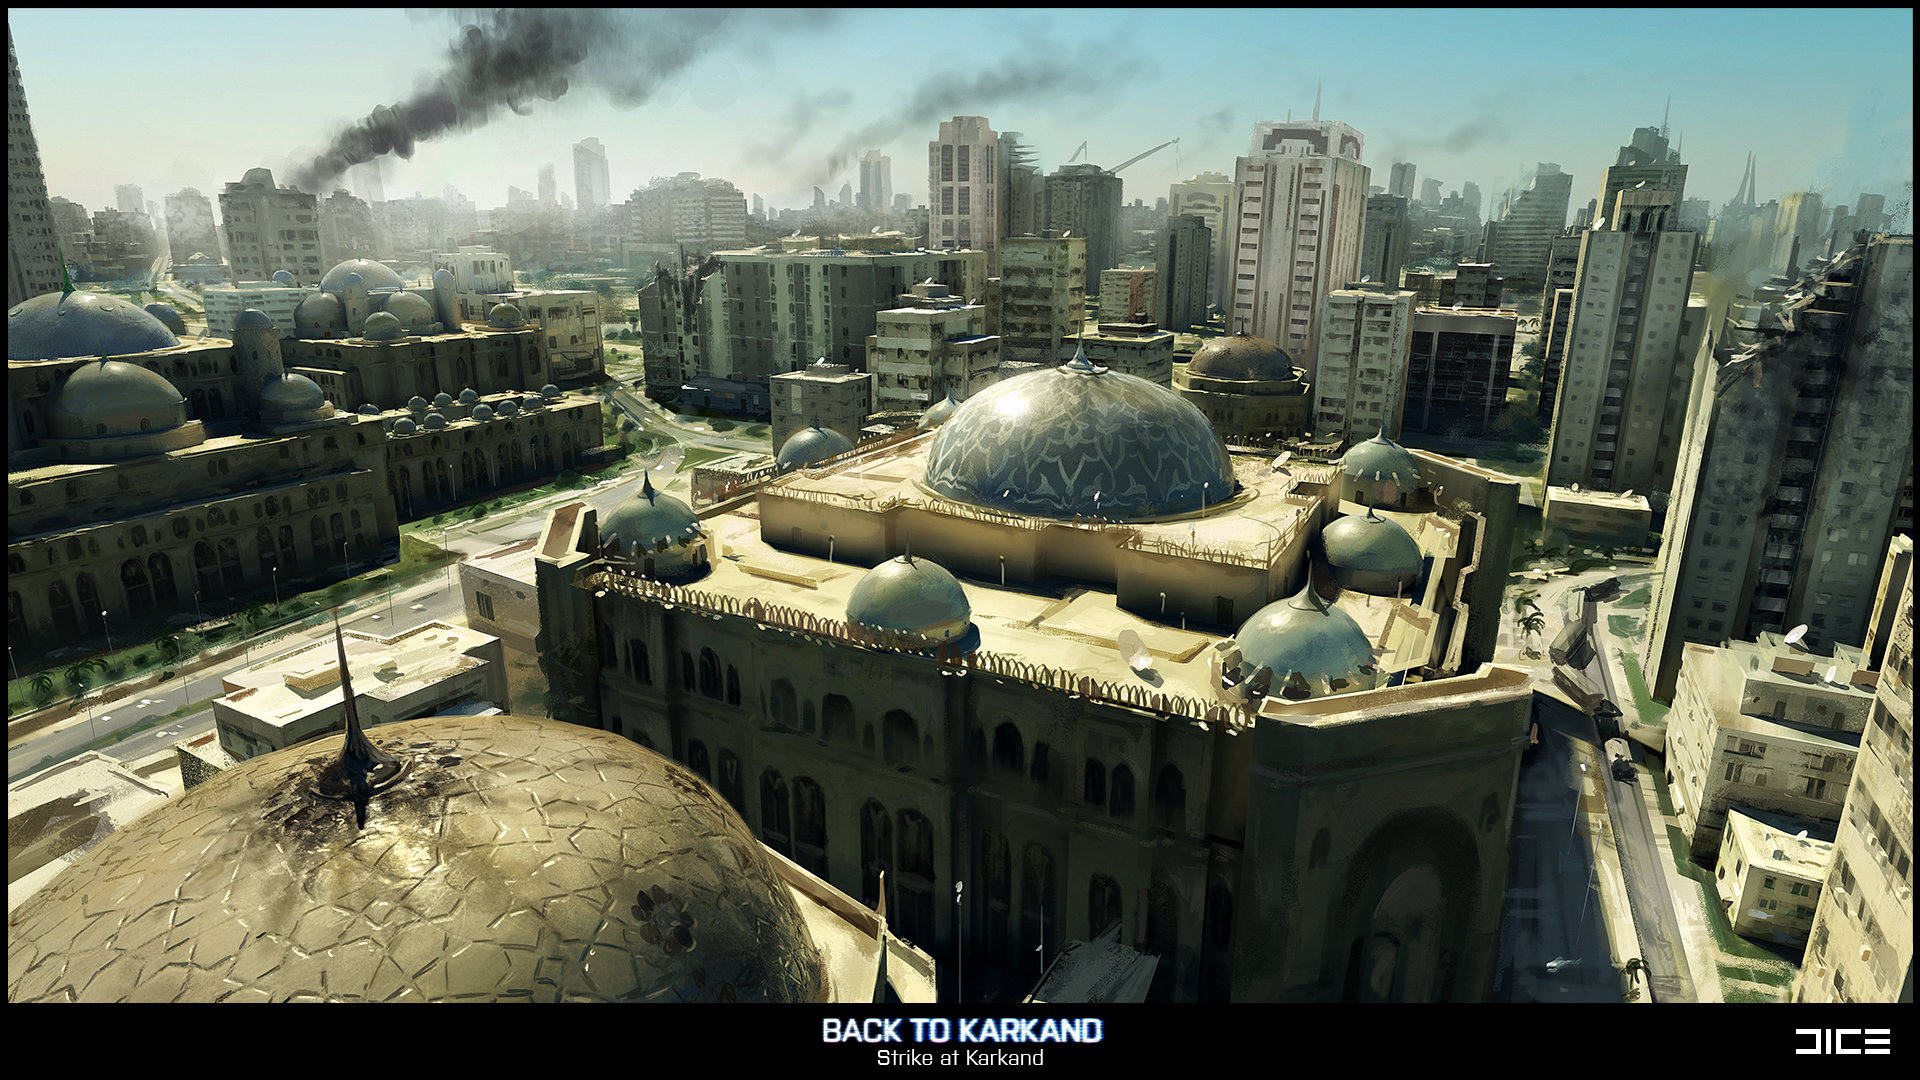 Battlefield 3: Back to Karkand (Concept)